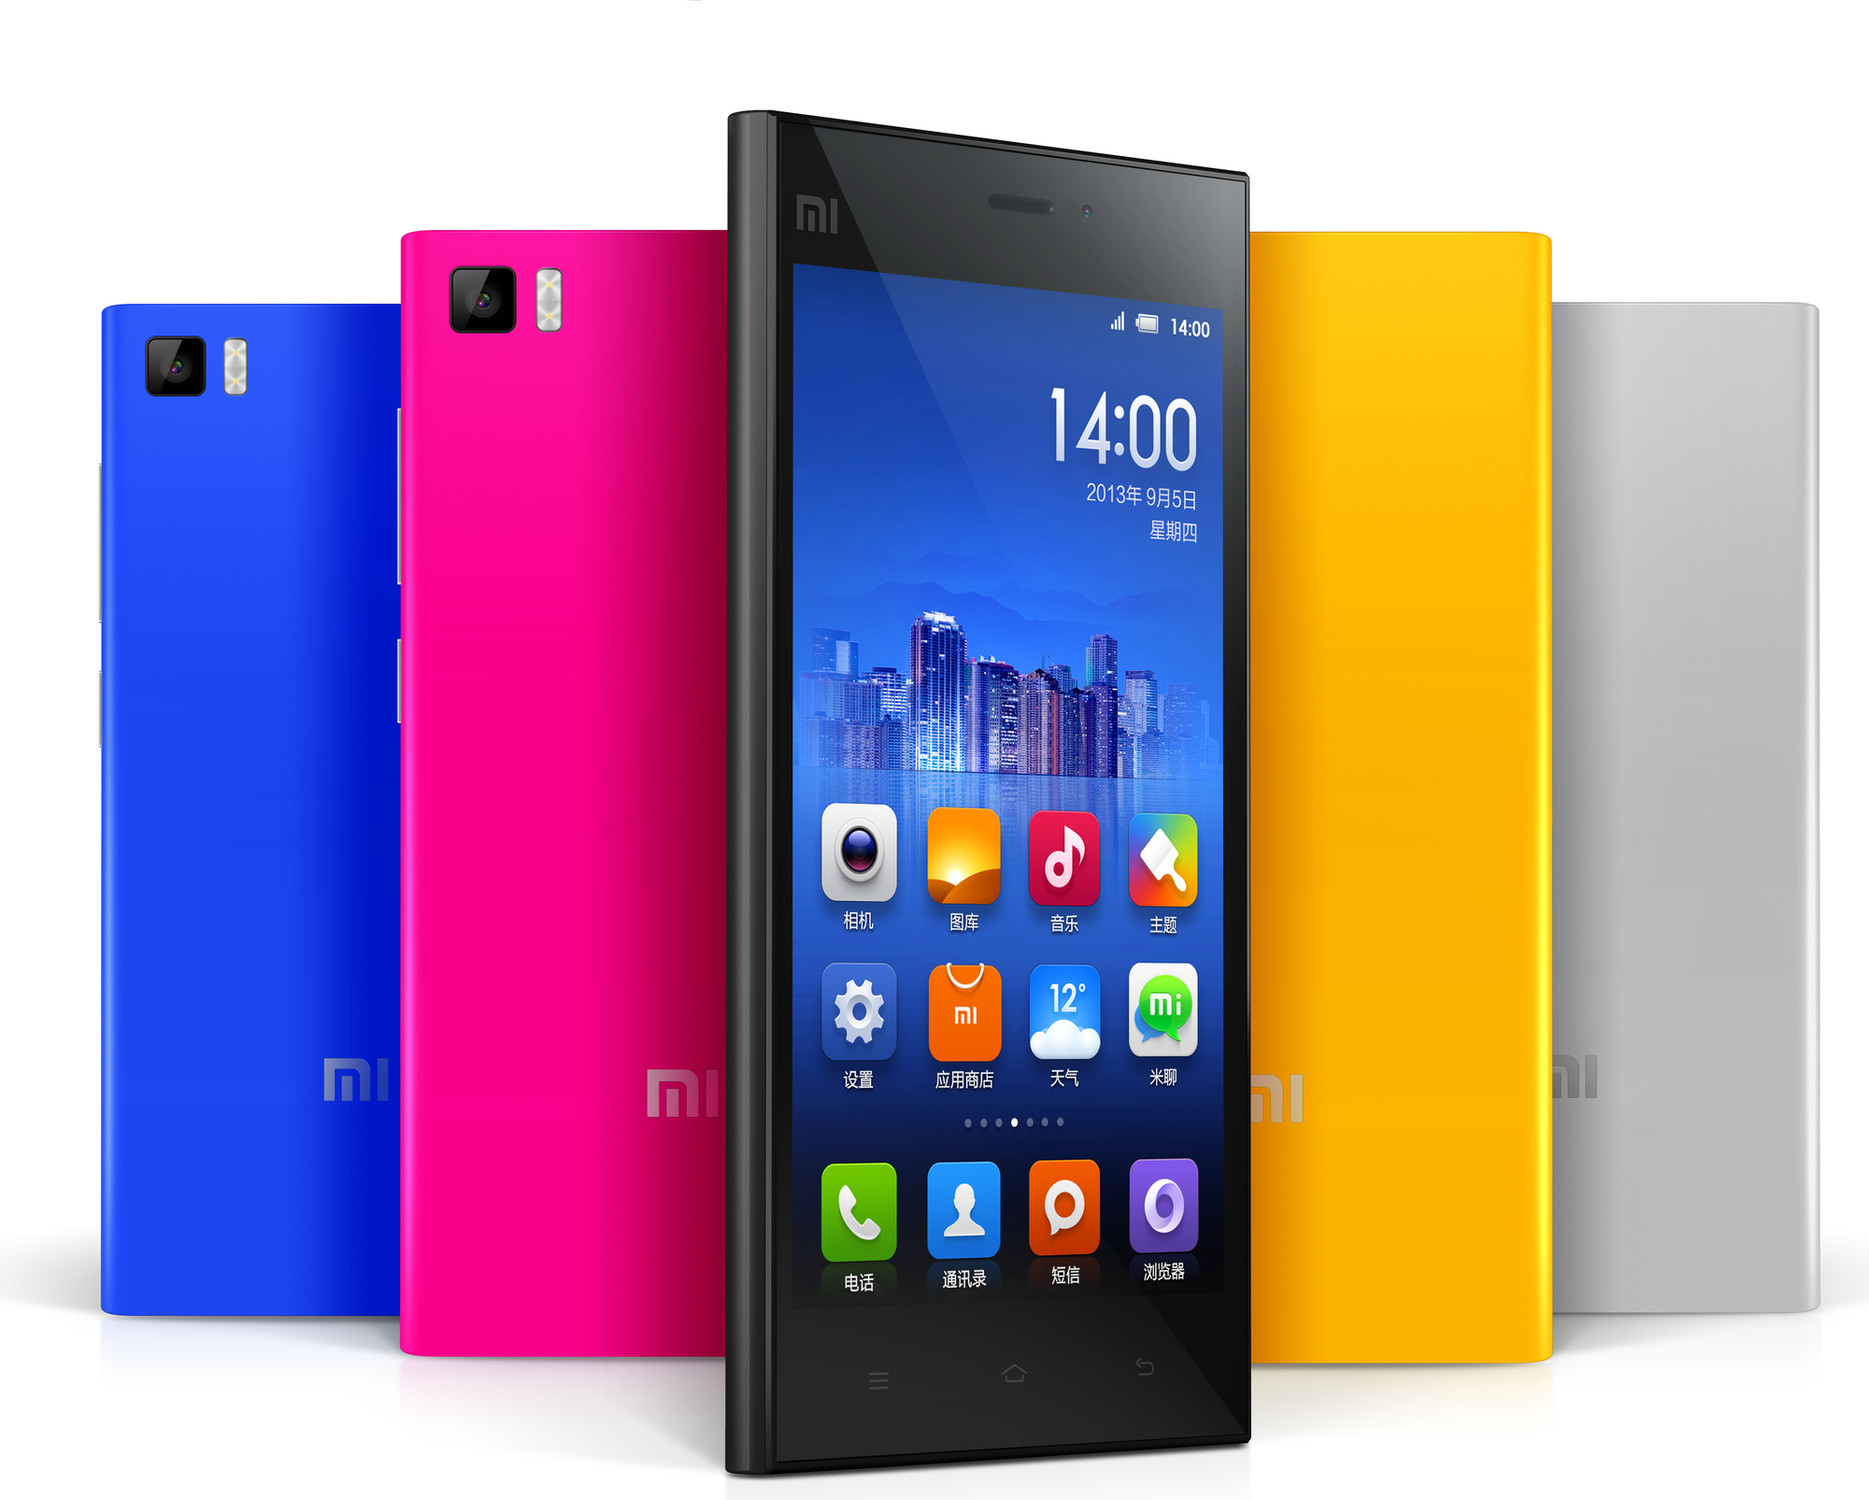 Xiaomi Mi 3 16GB - Specs and Price - Phonegg